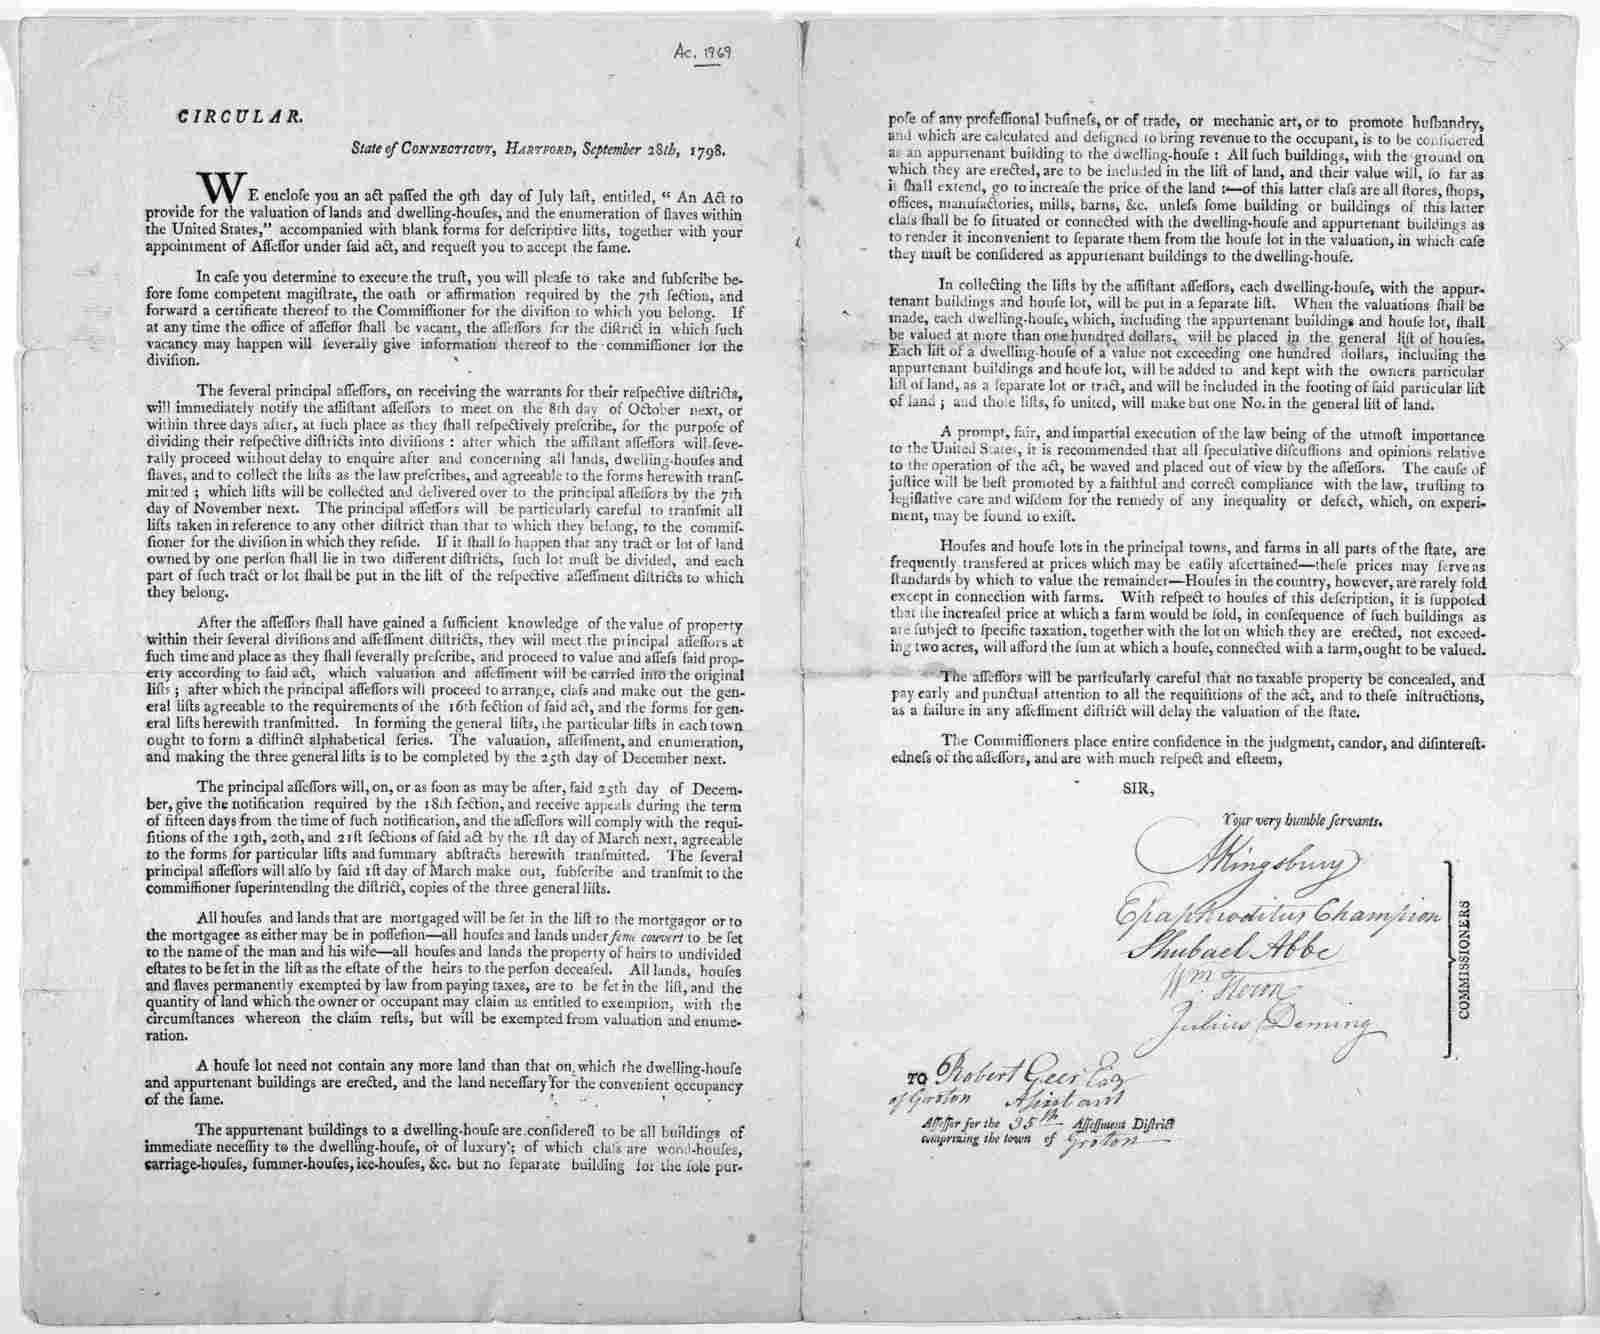 """Circular. State of Connecticut, Hartford, September 18th, 1798. We enclose you an act passed the 9th day of July last, entitled, """"An act to provide for the valuation of lands and dwelling-houses, and the enumeration of slaves within the United S"""